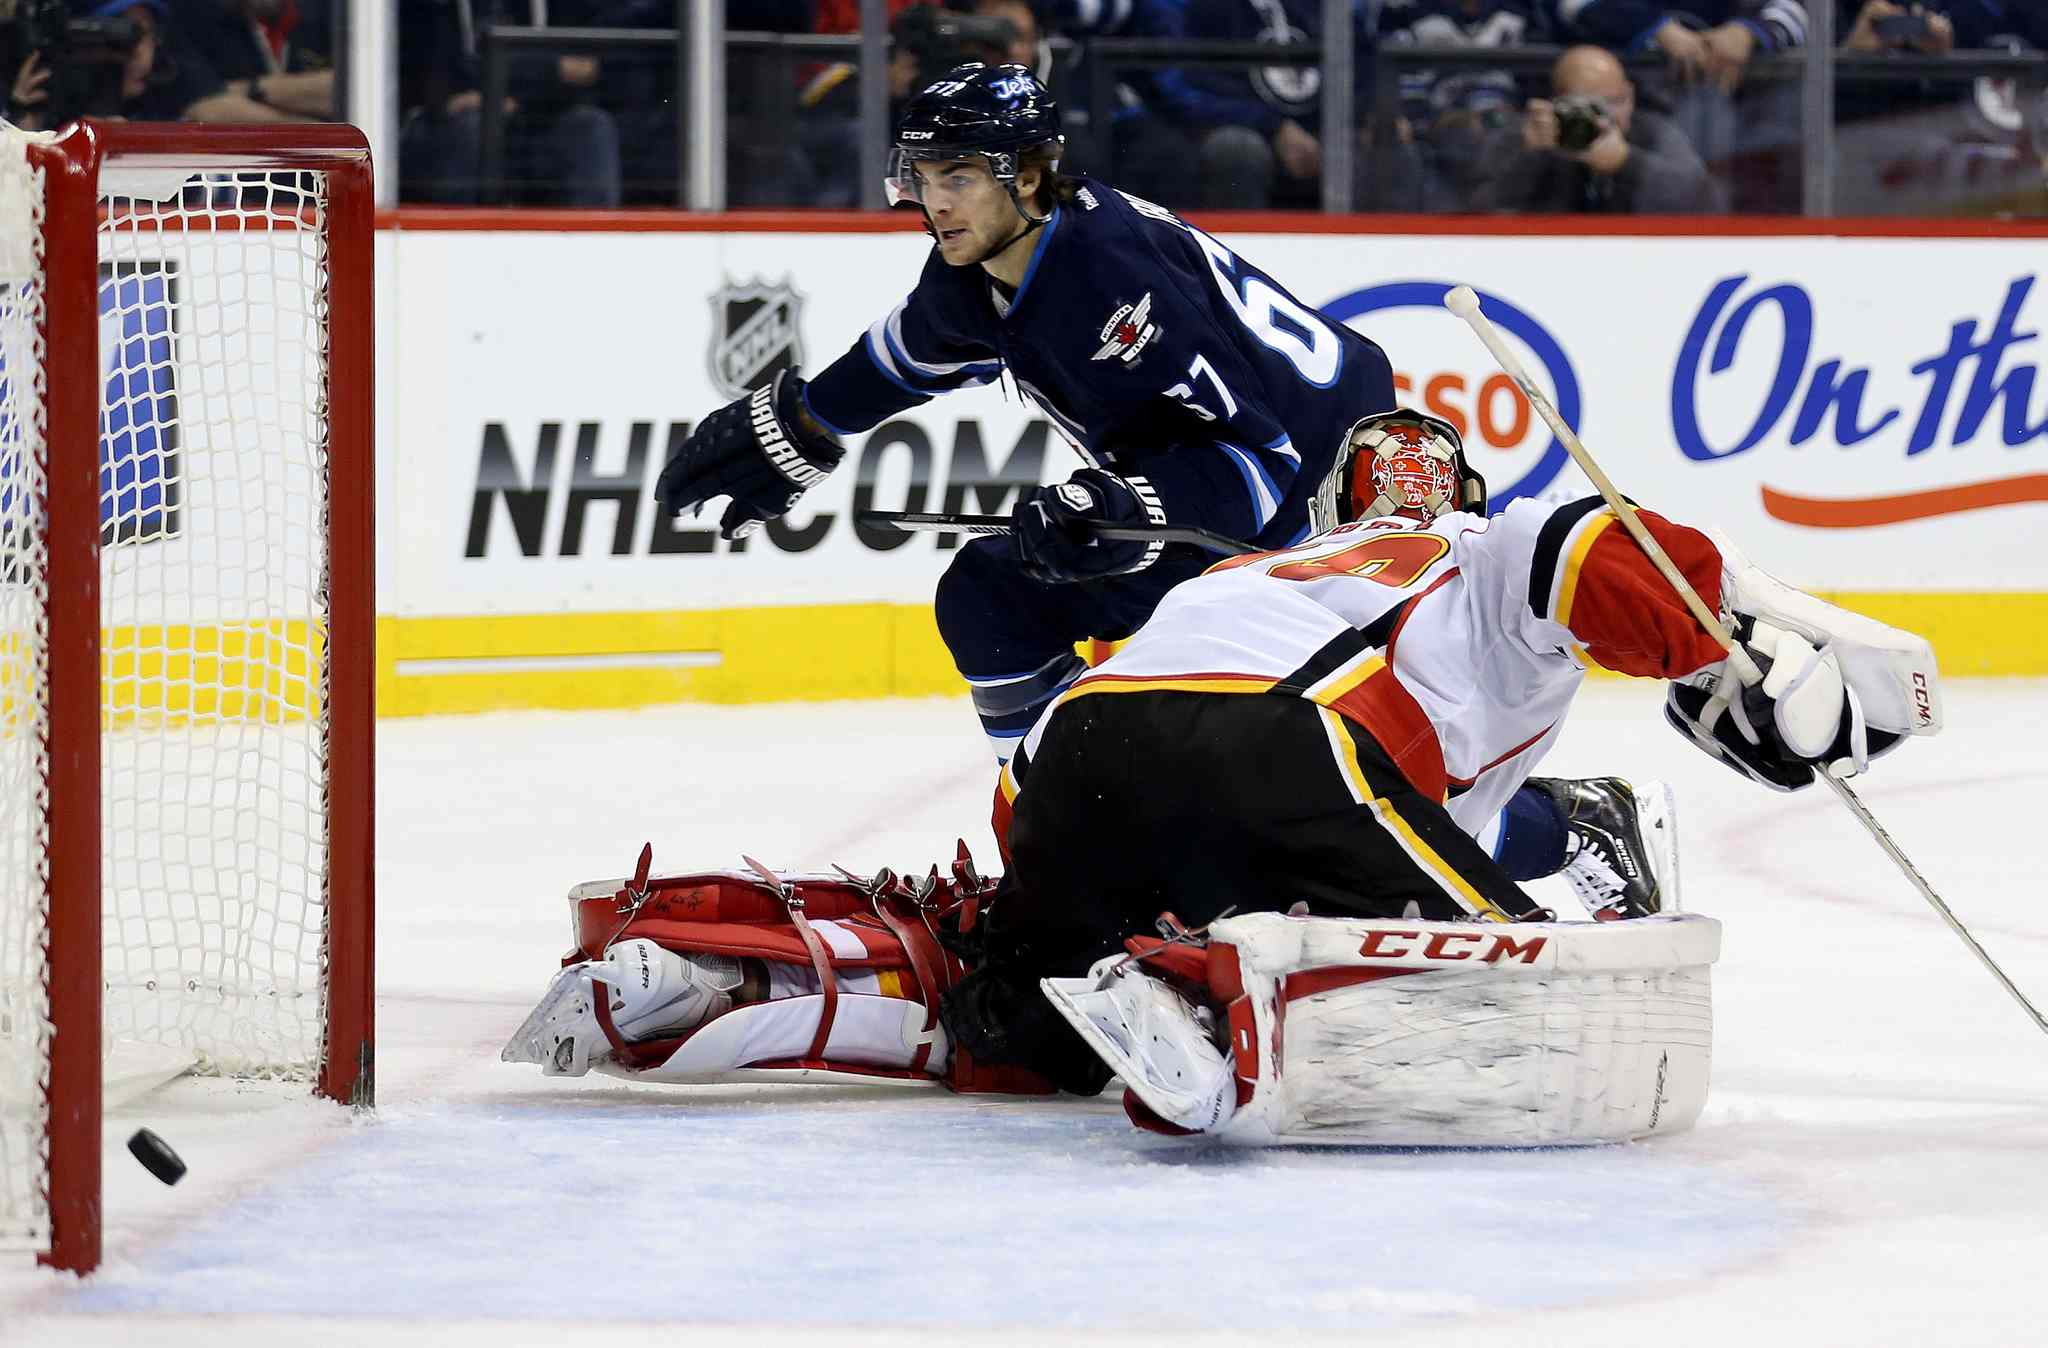 Winnipeg Jets' Michael Frolik (67) scores on Calgary Flames' goaltender Reto Berra (29) during second period NHL hockey action in Winnipeg Monday, Nov. 18, 2013.